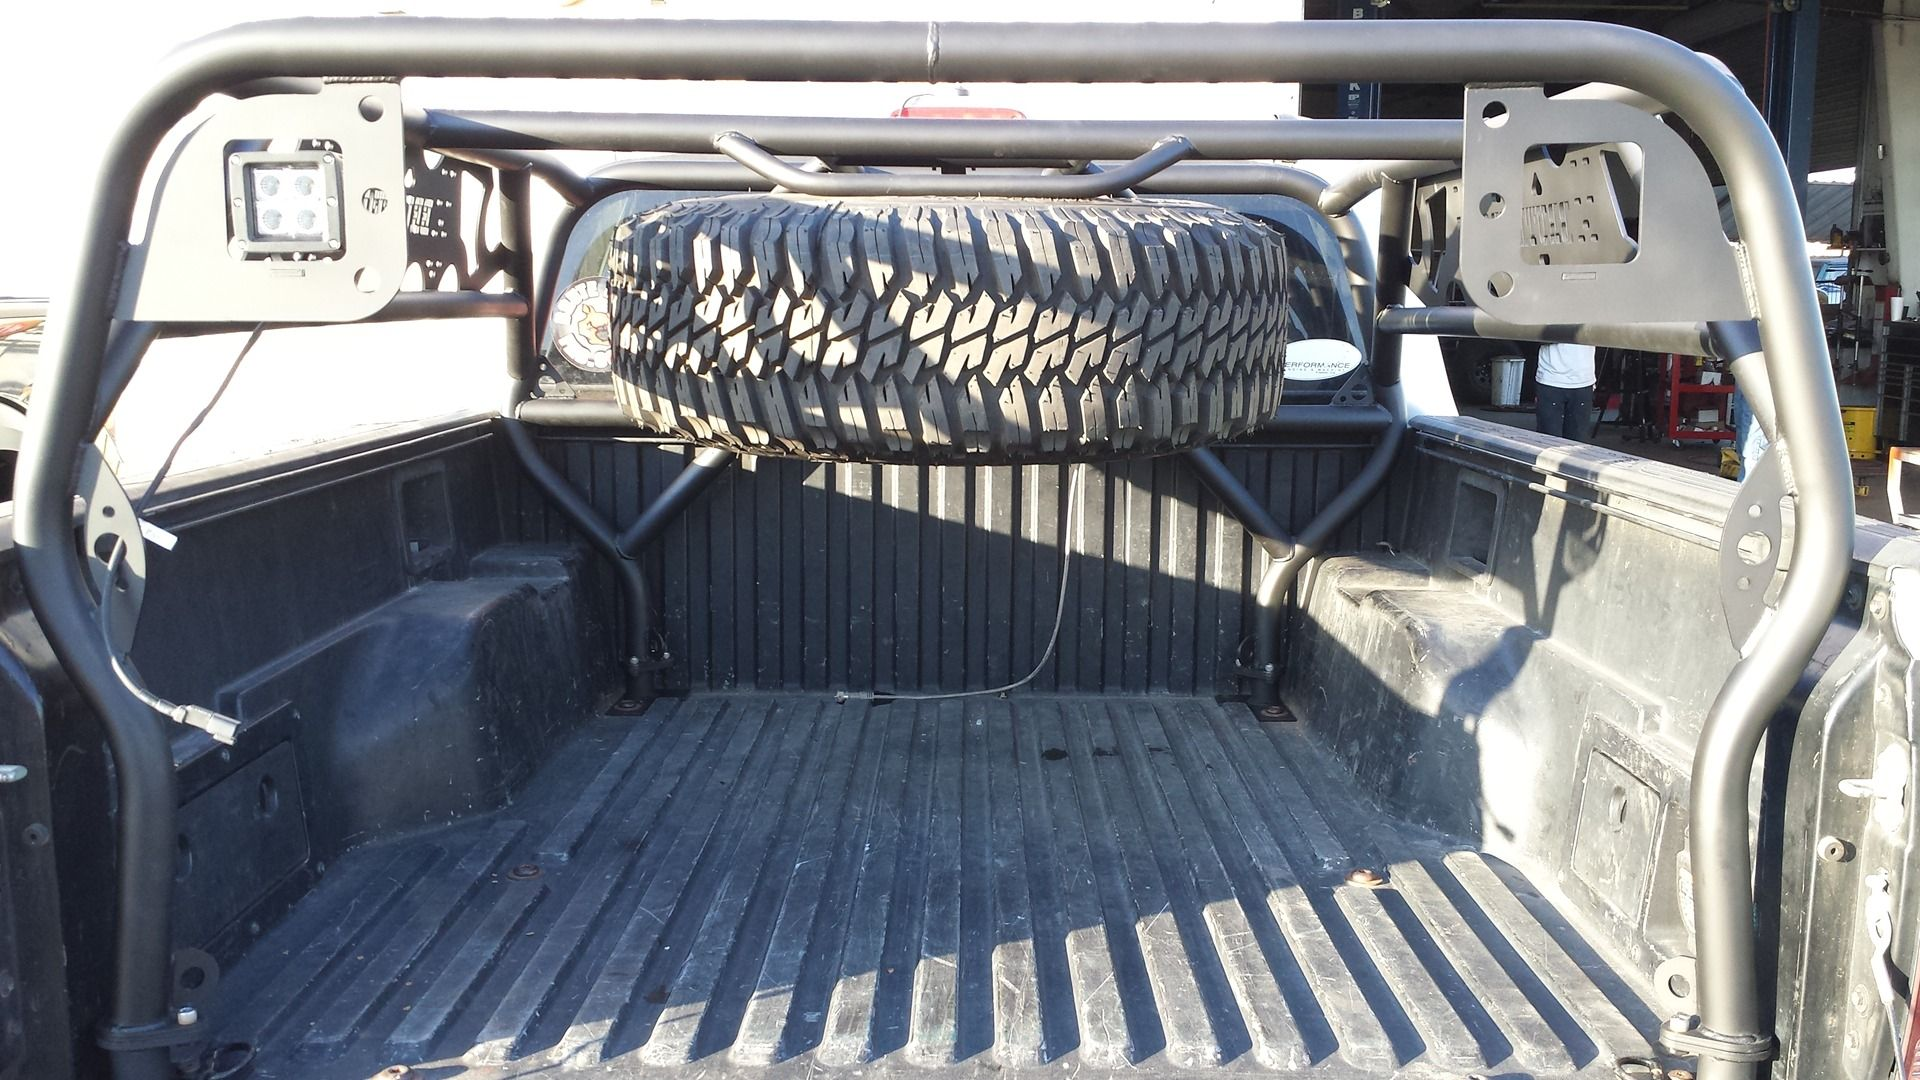 Tacoma Steel Pack Rack Bed Cross Bars Pair 05 15 8205 Ap Bb Pr 175 00 Pure Tacoma Accessories Parts And Accessori Tacoma Accessories Tacoma Roof Tent